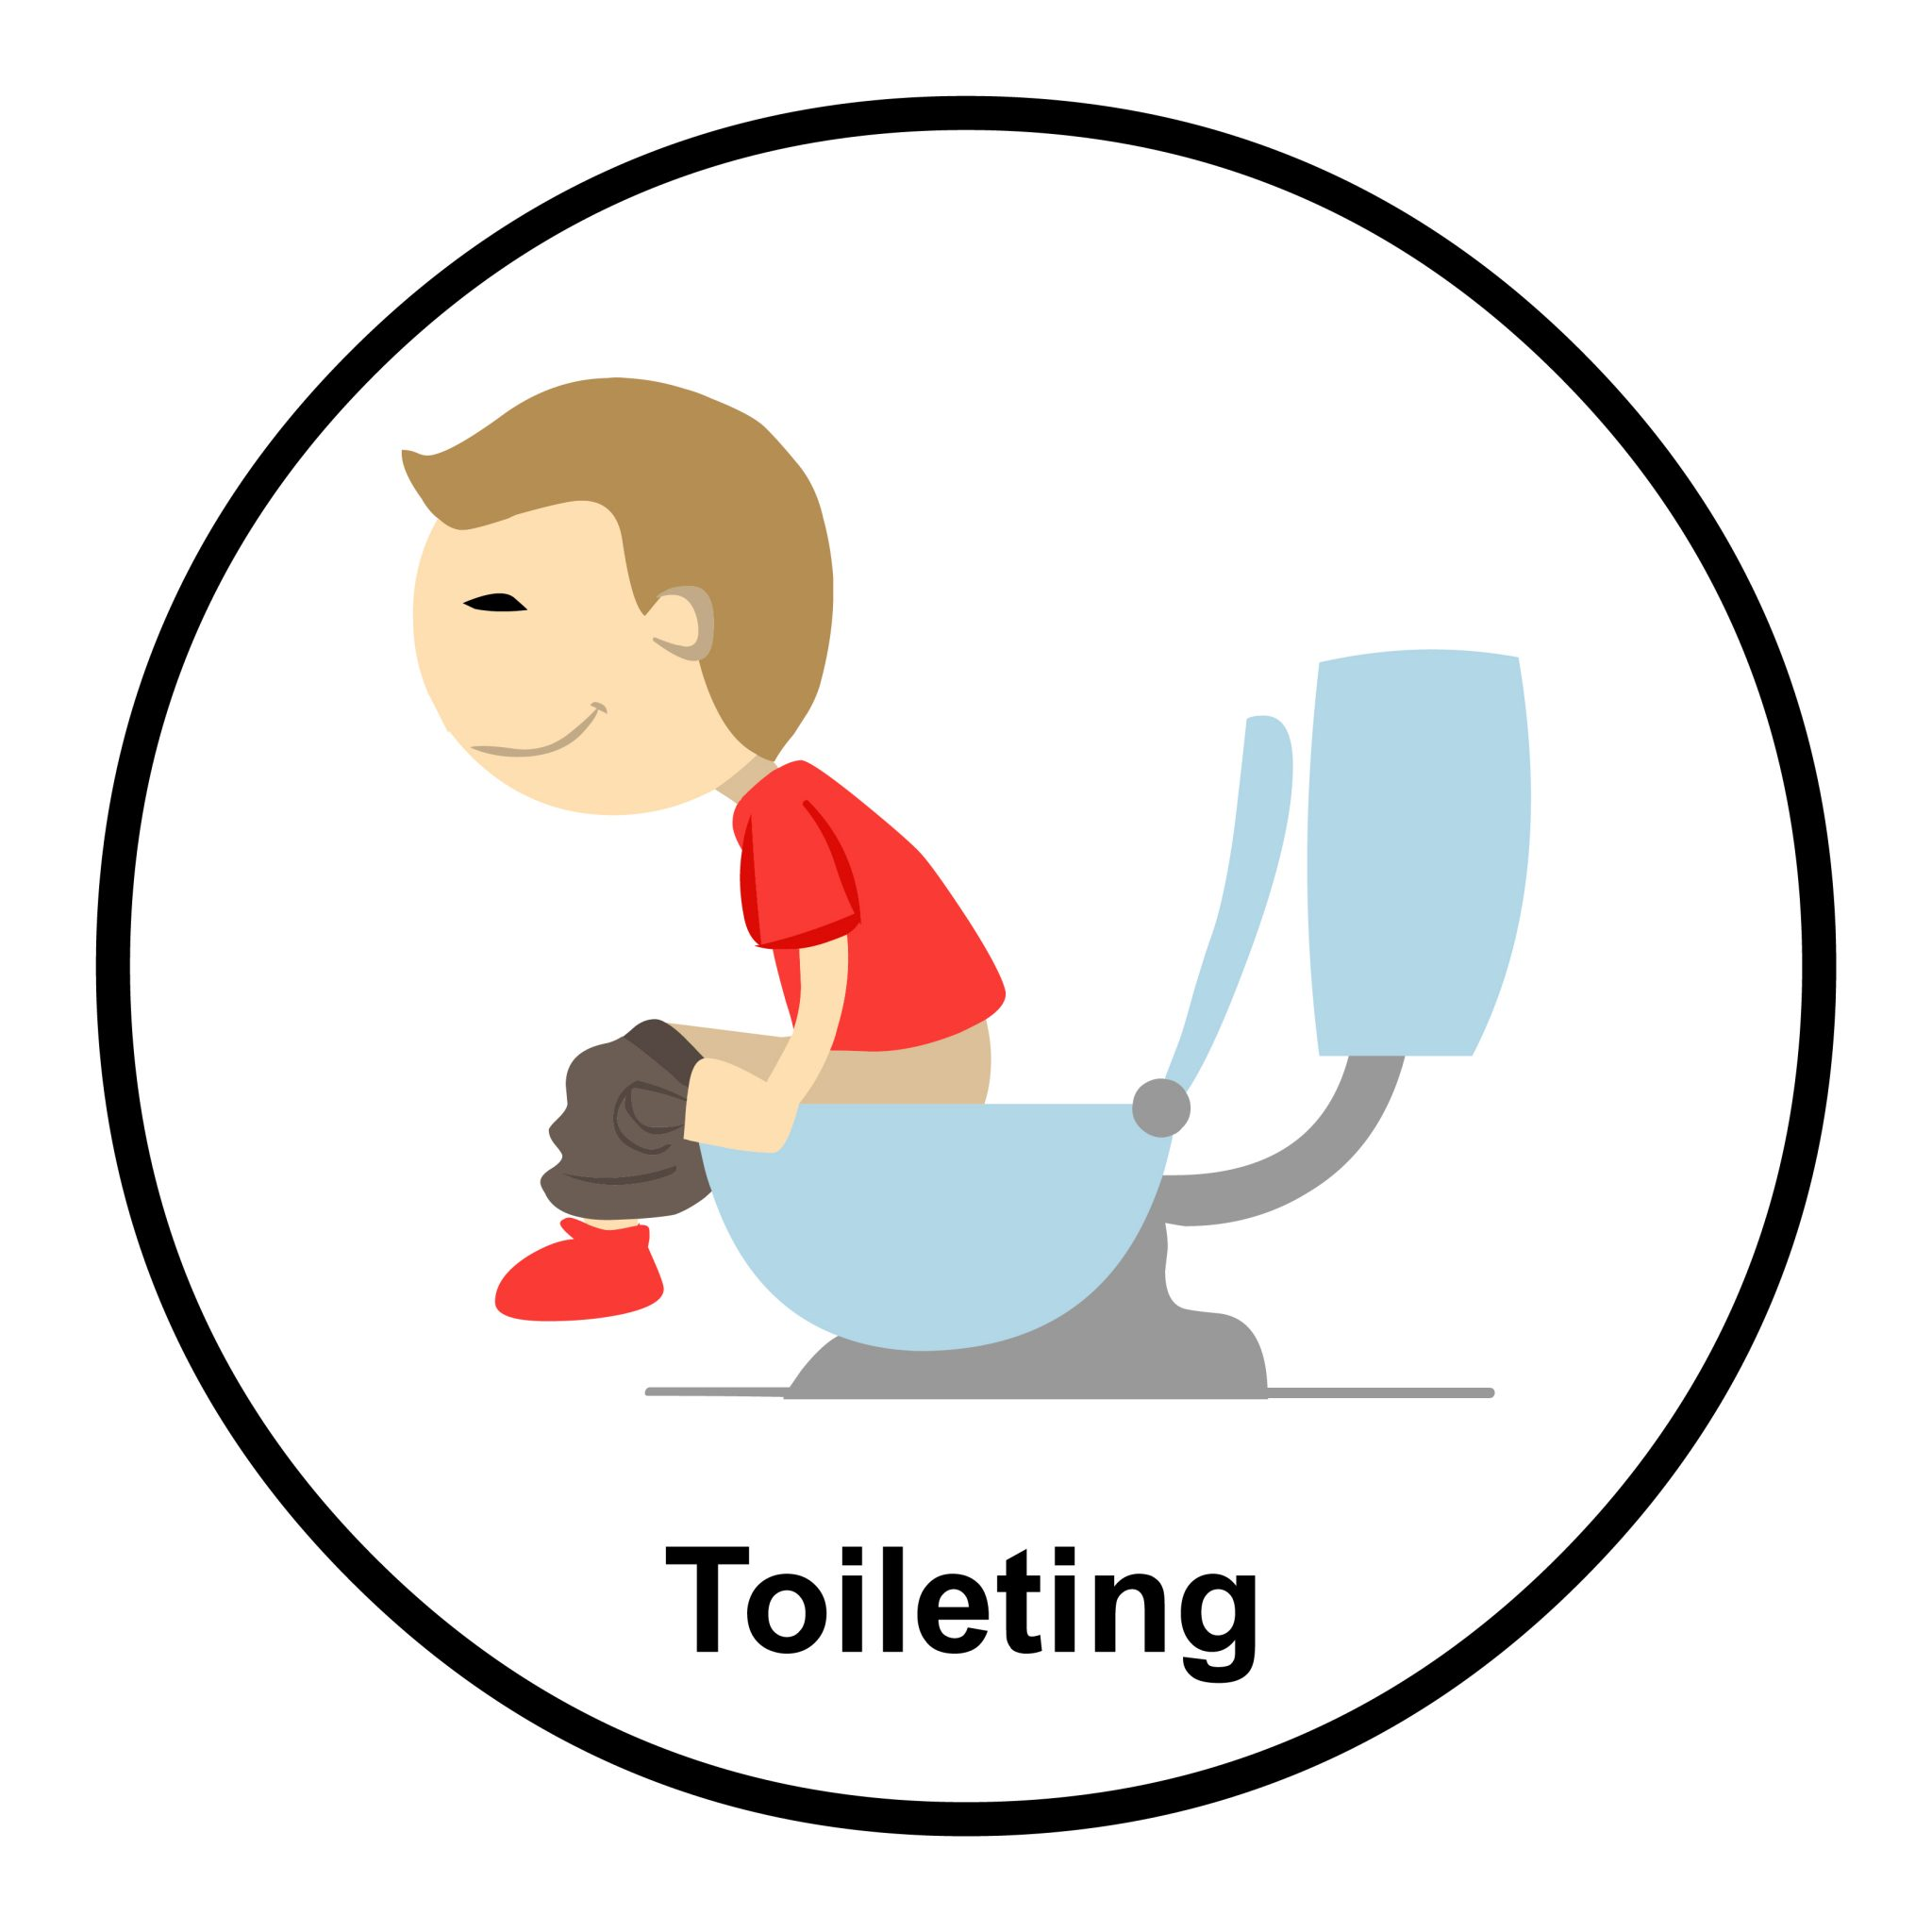 toileting